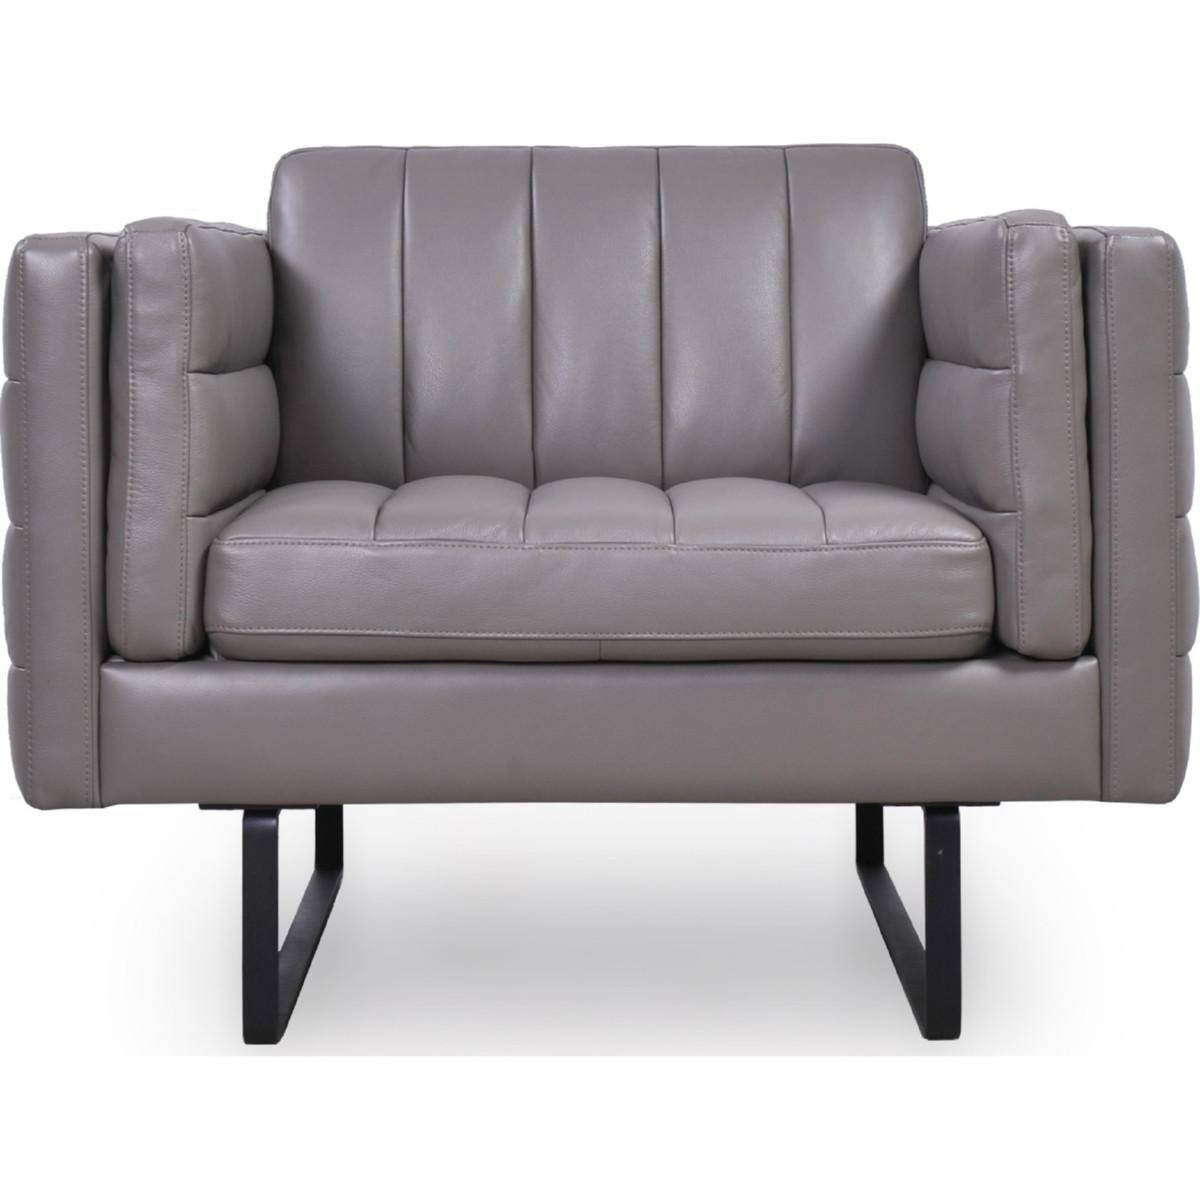 Buy Moroni Orson 582 Arm Chairs In Gray, Top Grain Leather For Favorite Orsen Tv Stands (View 10 of 25)